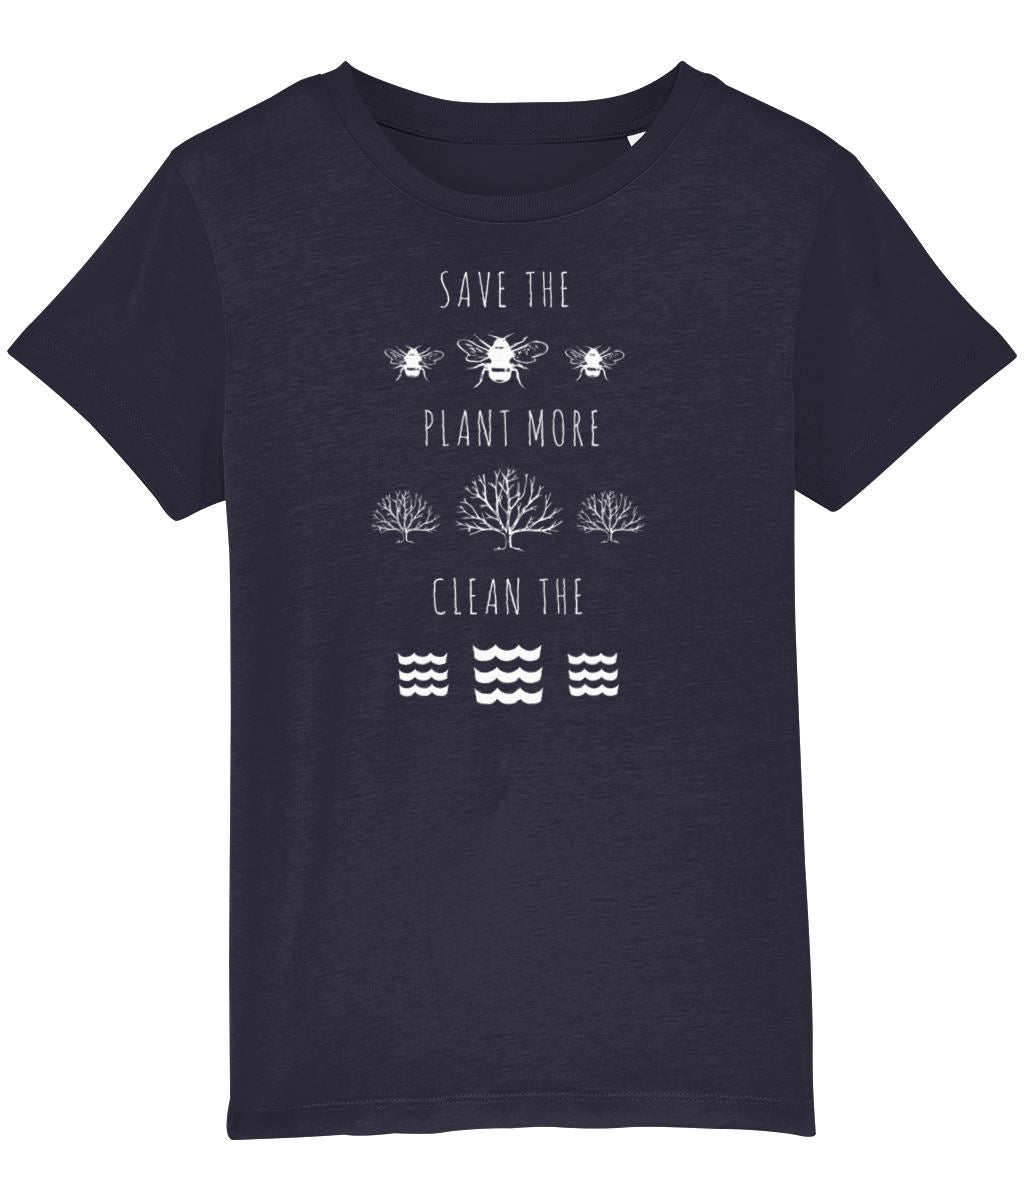 """Save the Bees, Plant More Trees, Clean the Seas"" Children's Vegan T-Shirt (Unisex) Clothing Vegan Original French Navy 3-4 years"